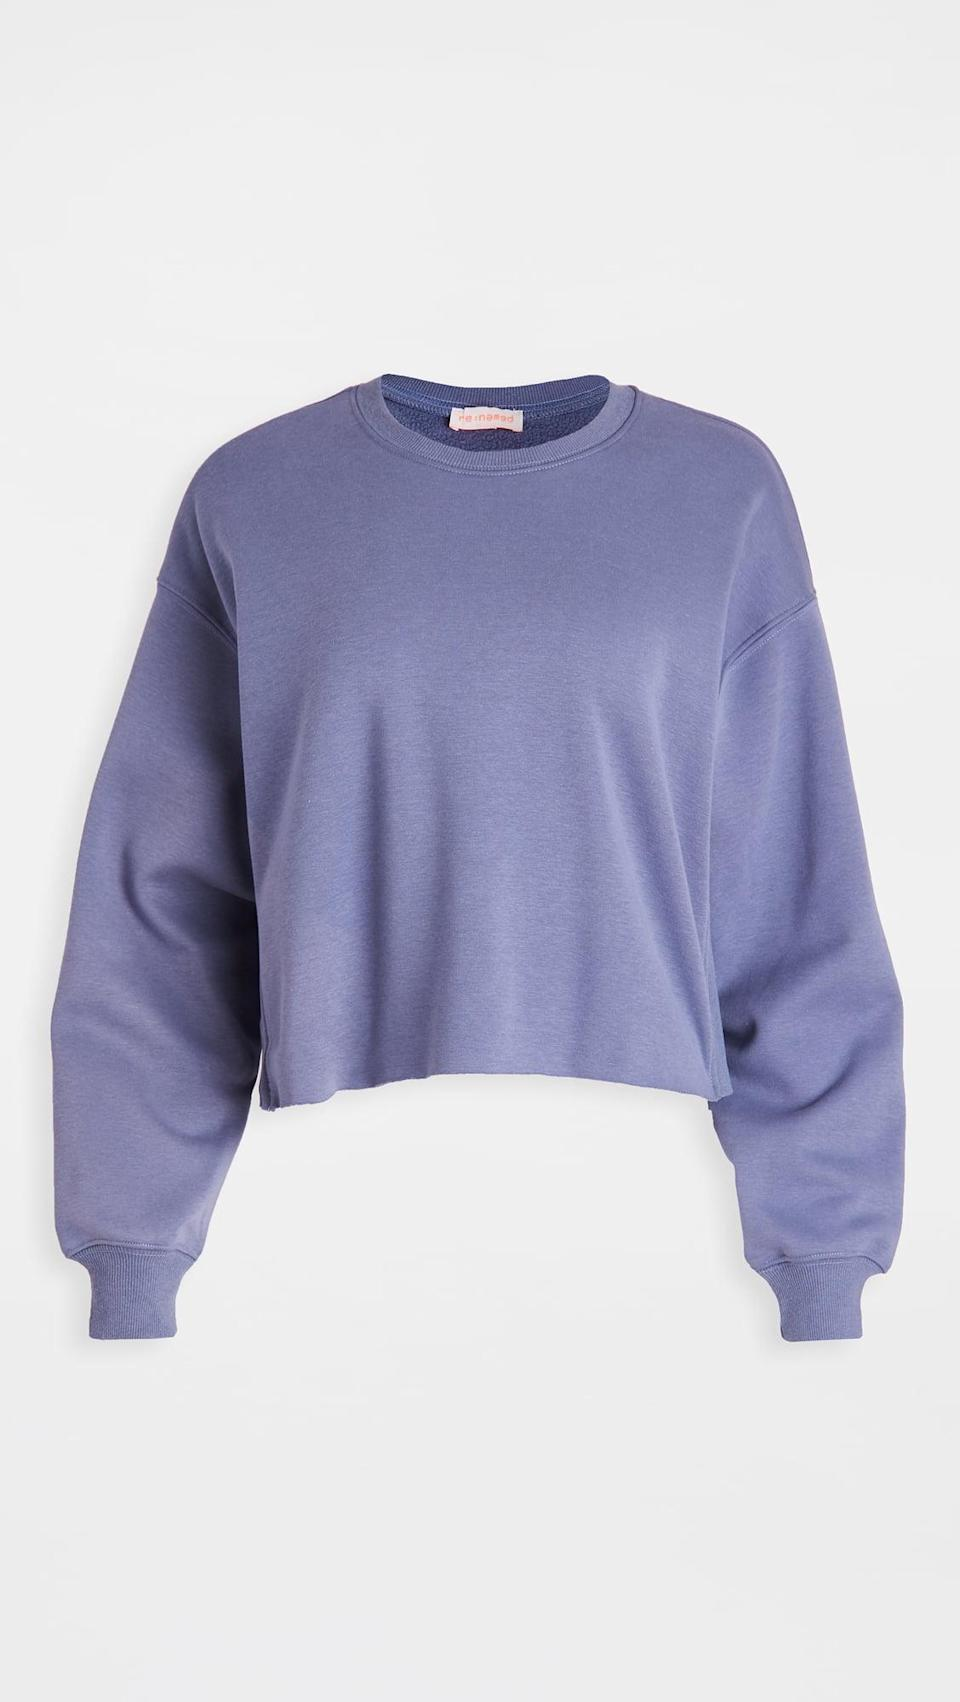 <p>Get cozy in this <span>Re:named Oversized Cropped Terry Fleece Sweatshirt</span> ($65).</p>